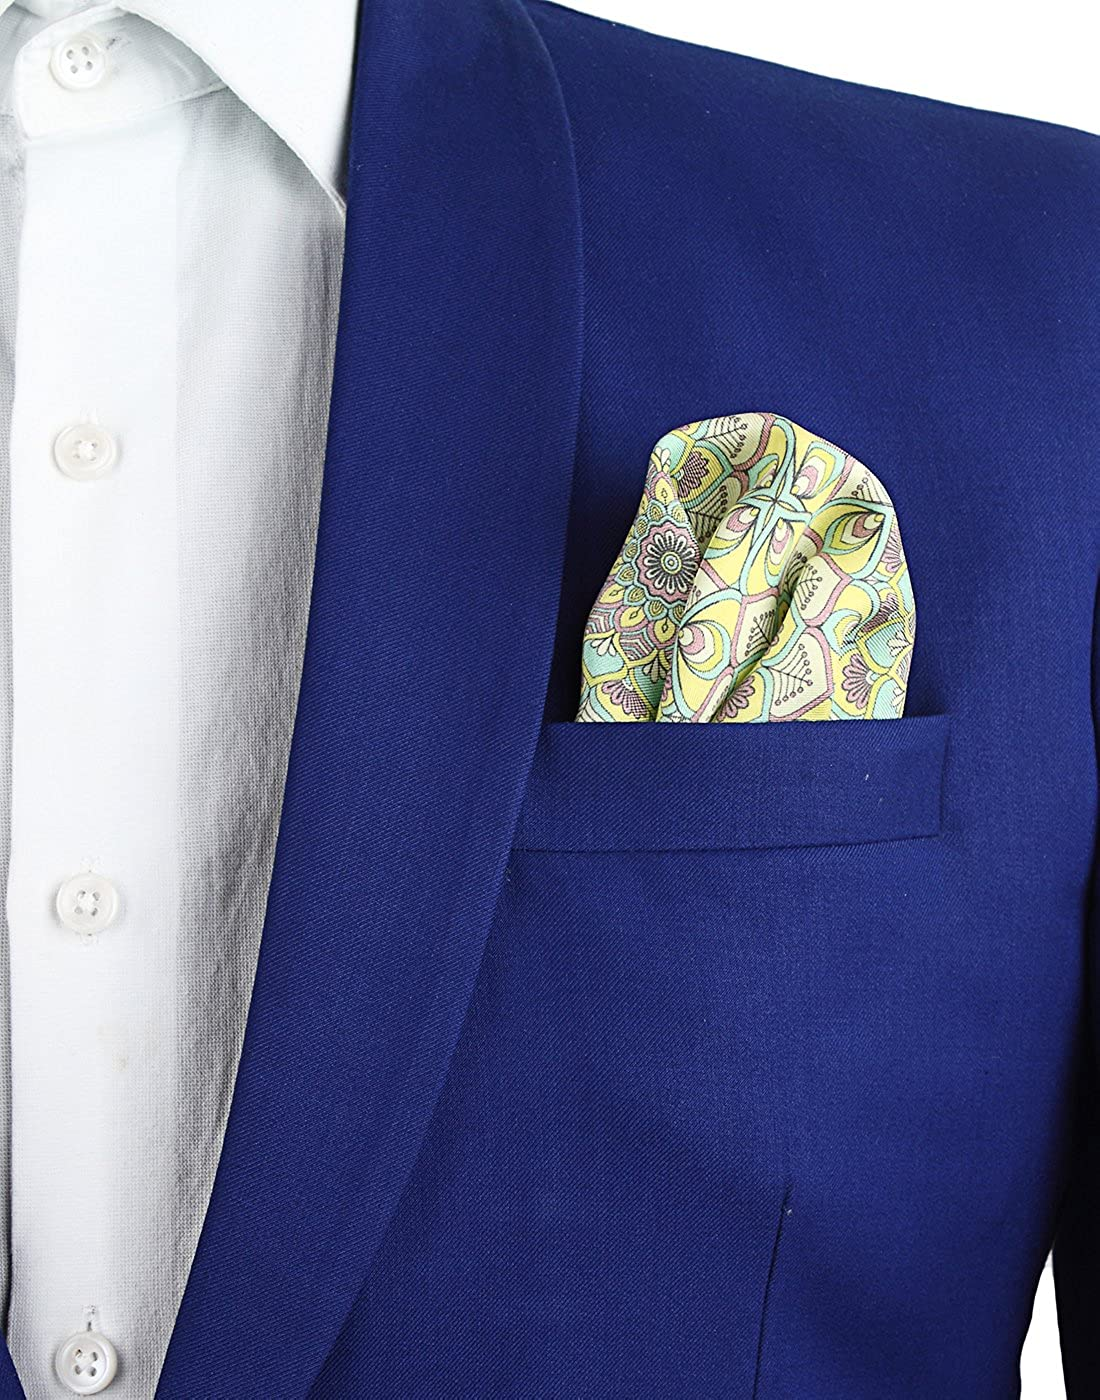 Chokore Pocket Square For Men Assorted 3 Pack Buy 2 get 1 free